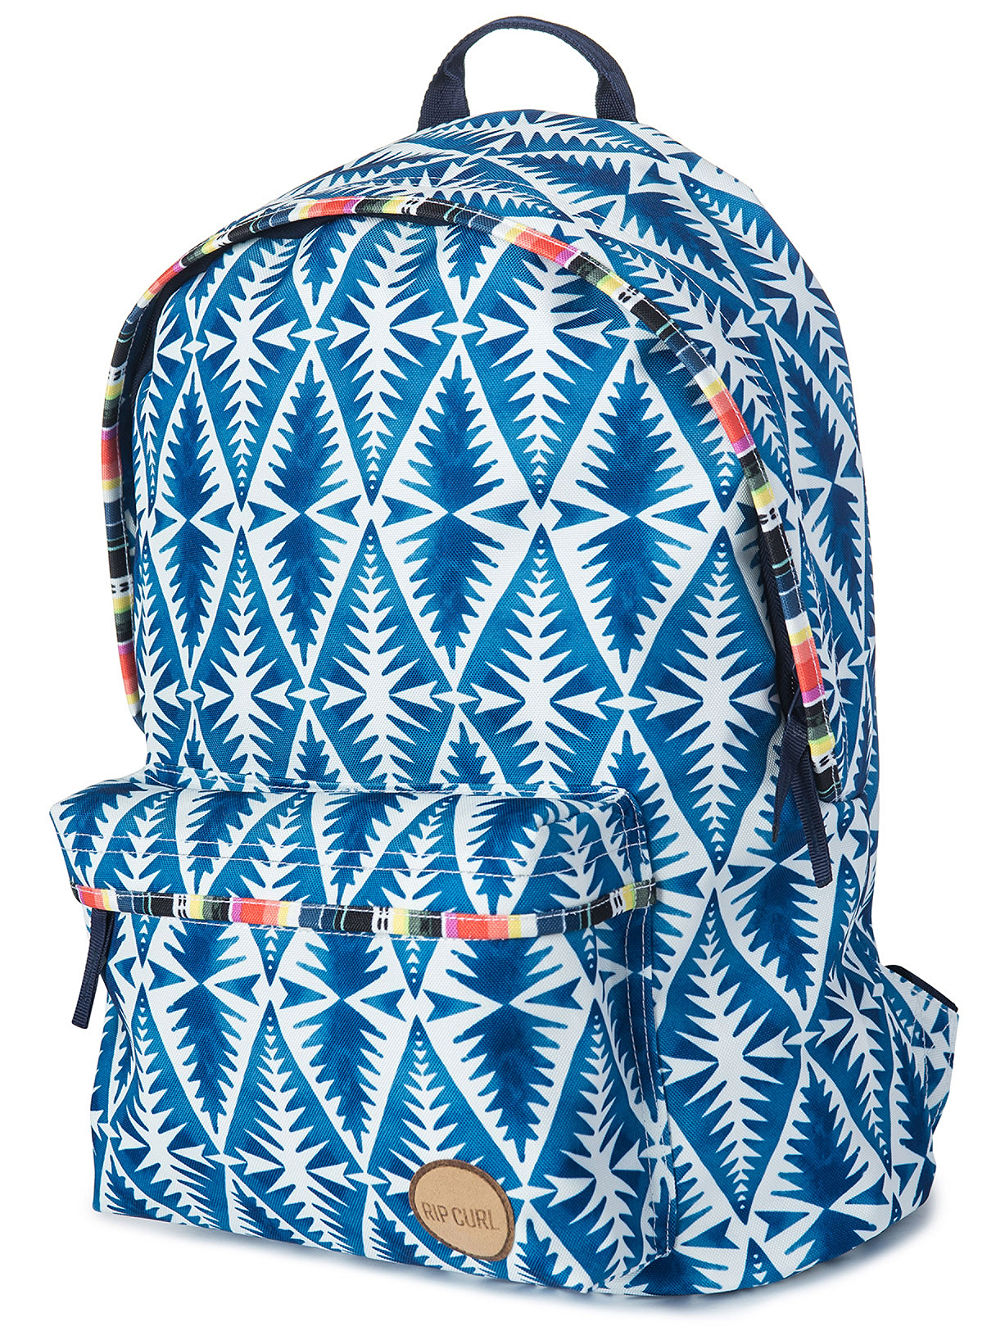 7f3017f92e Buy Rip Curl Beach Bazaar Dome Backpack online at Blue Tomato